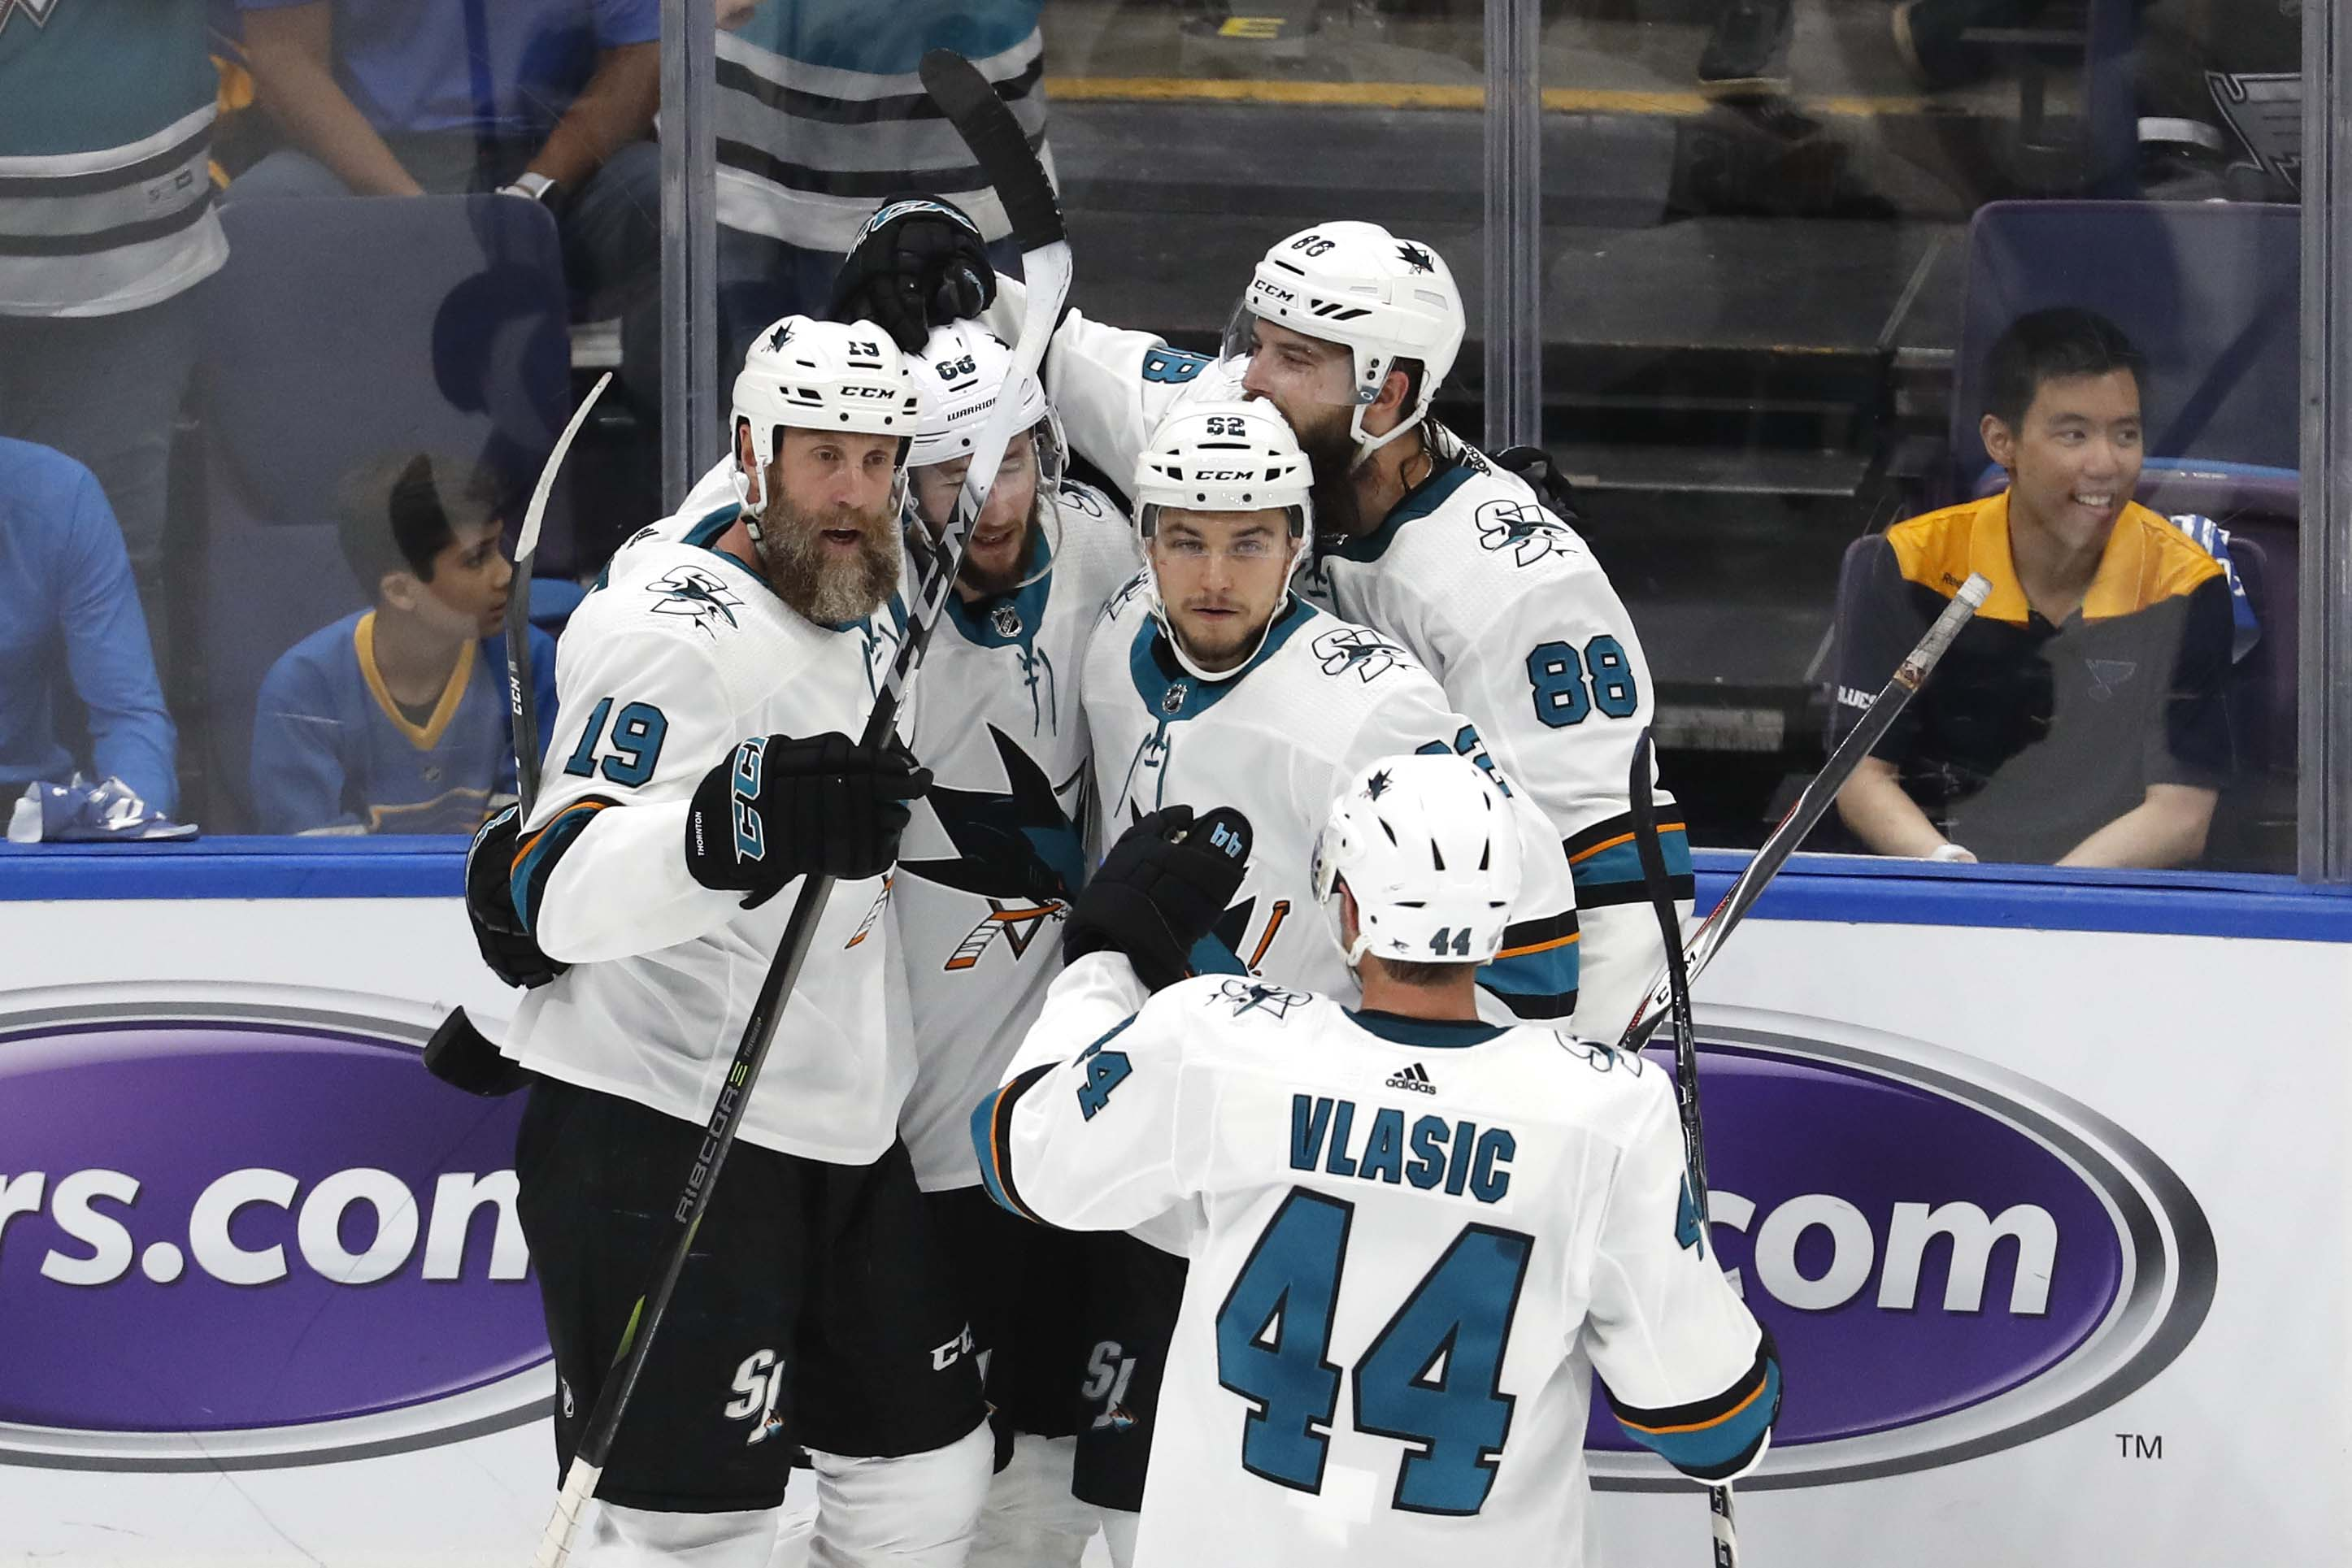 San Jose Sharks center Joe Thornton (19) is congratulated by center Melker Karlsson (68) and center Lukas Radil (52) and defenseman Brent Burns (88) and defenseman Marc-Edouard Vlasic (44) after scoring a goal against the St. Louis Blues during the first